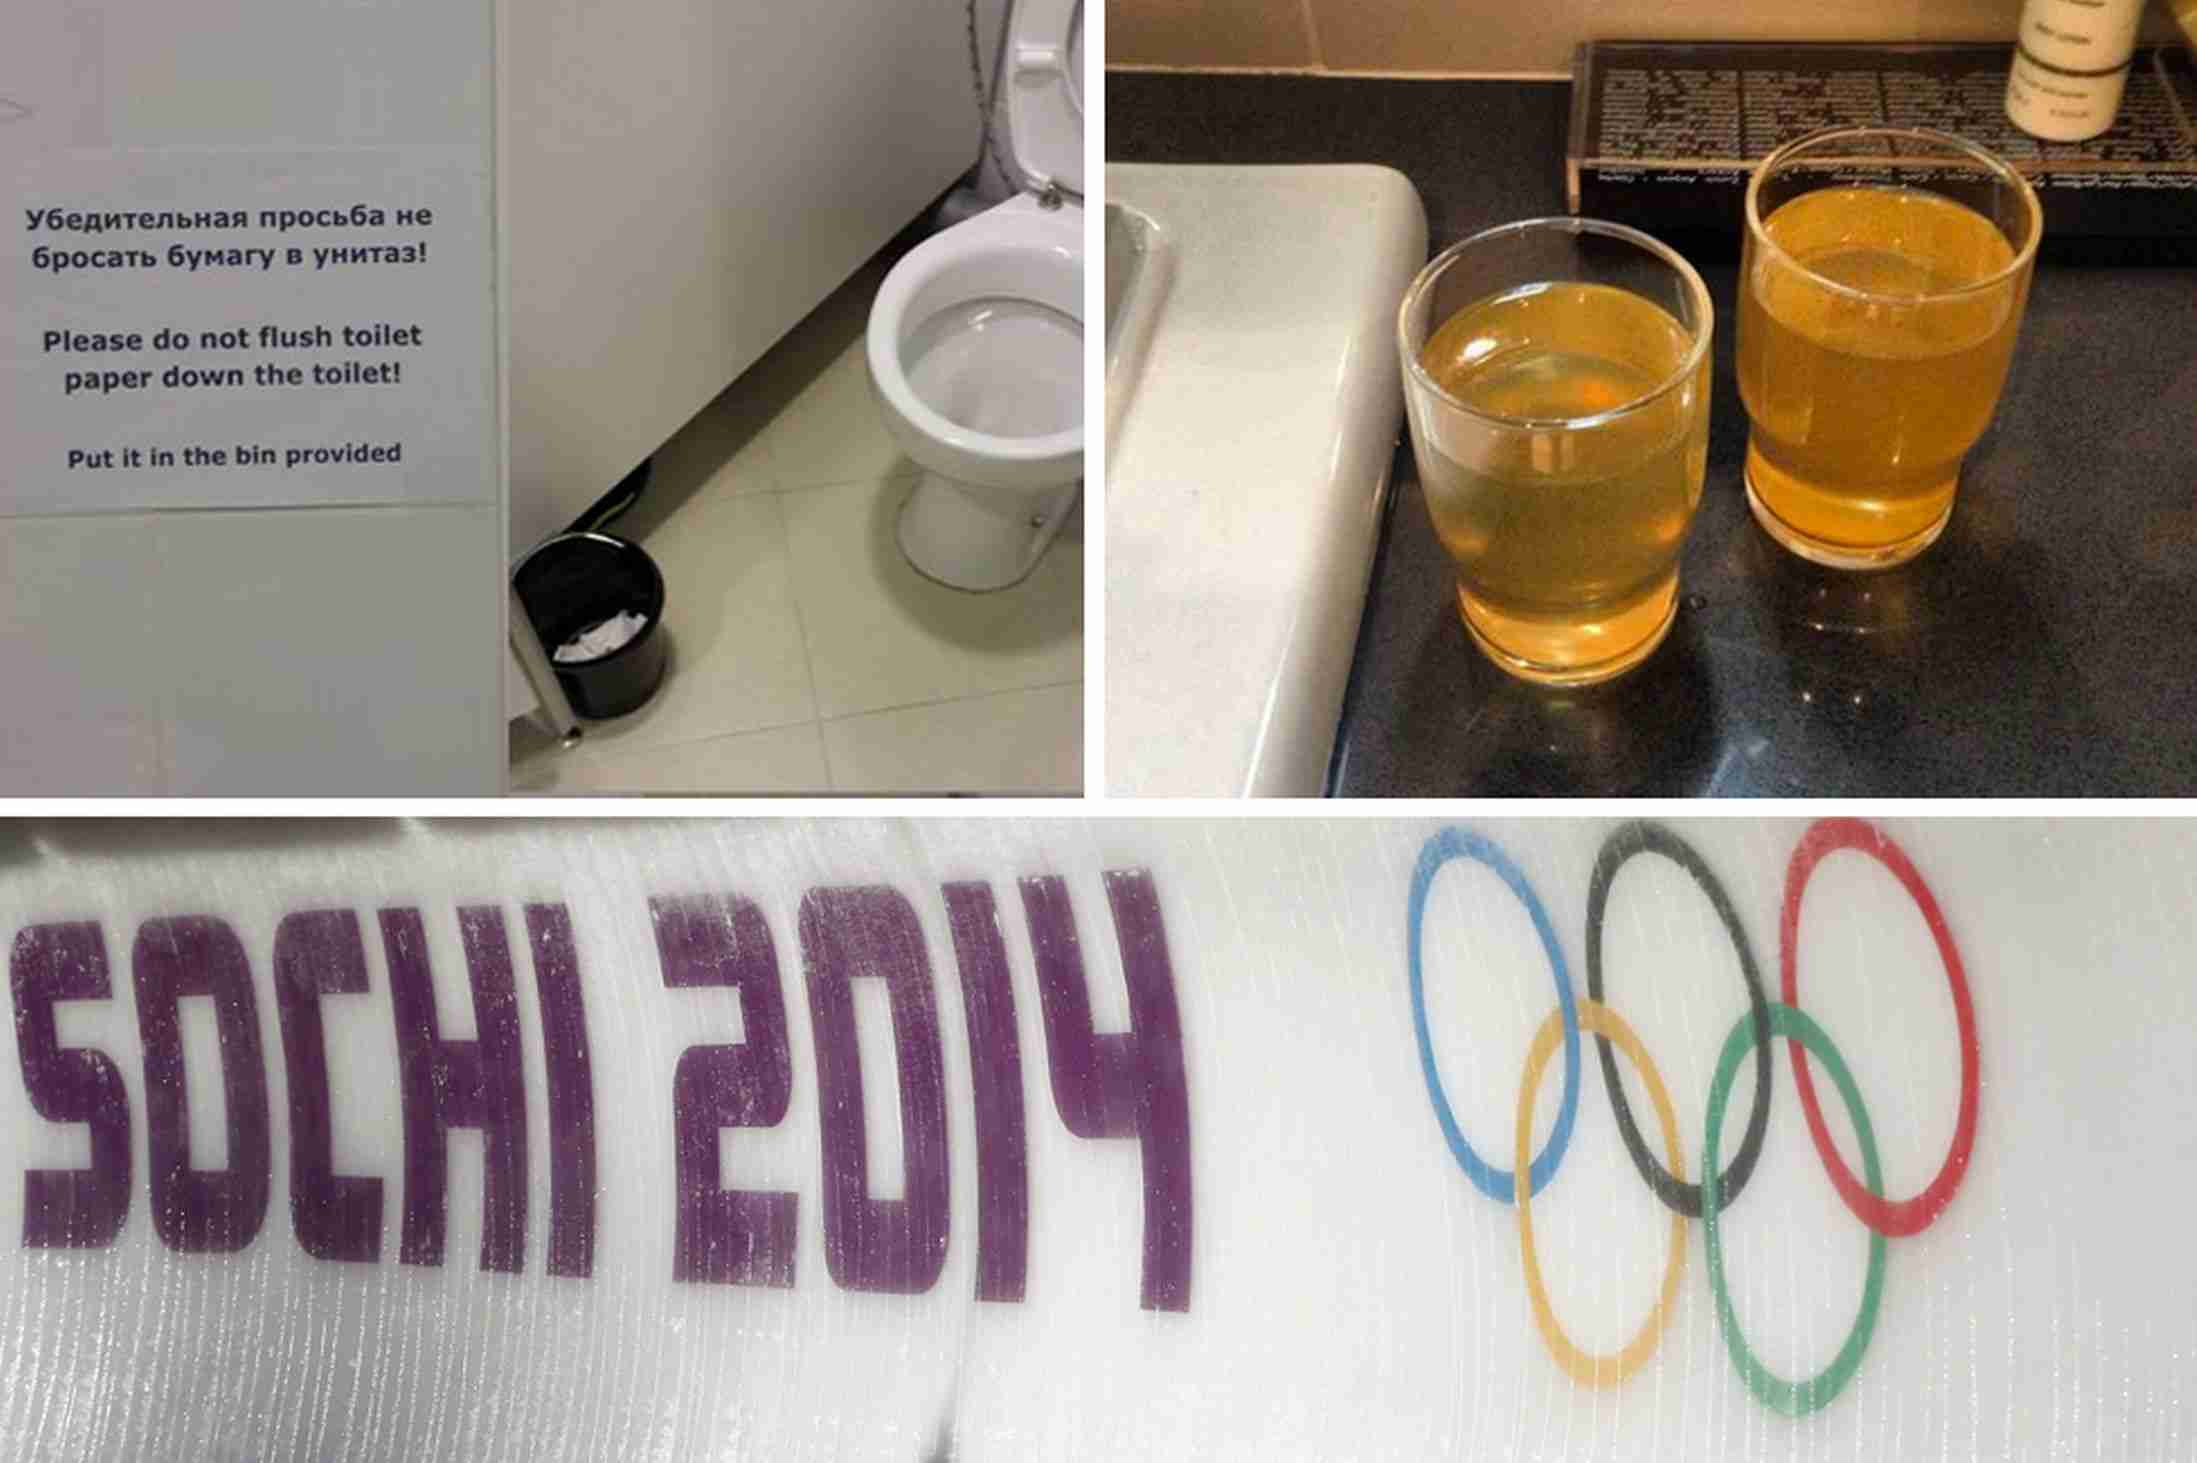 Sochi Winter Olympics 2014 hotels: From yellow water to no flushing toilets, Twitter exposes awful accommodation - Mirror Online